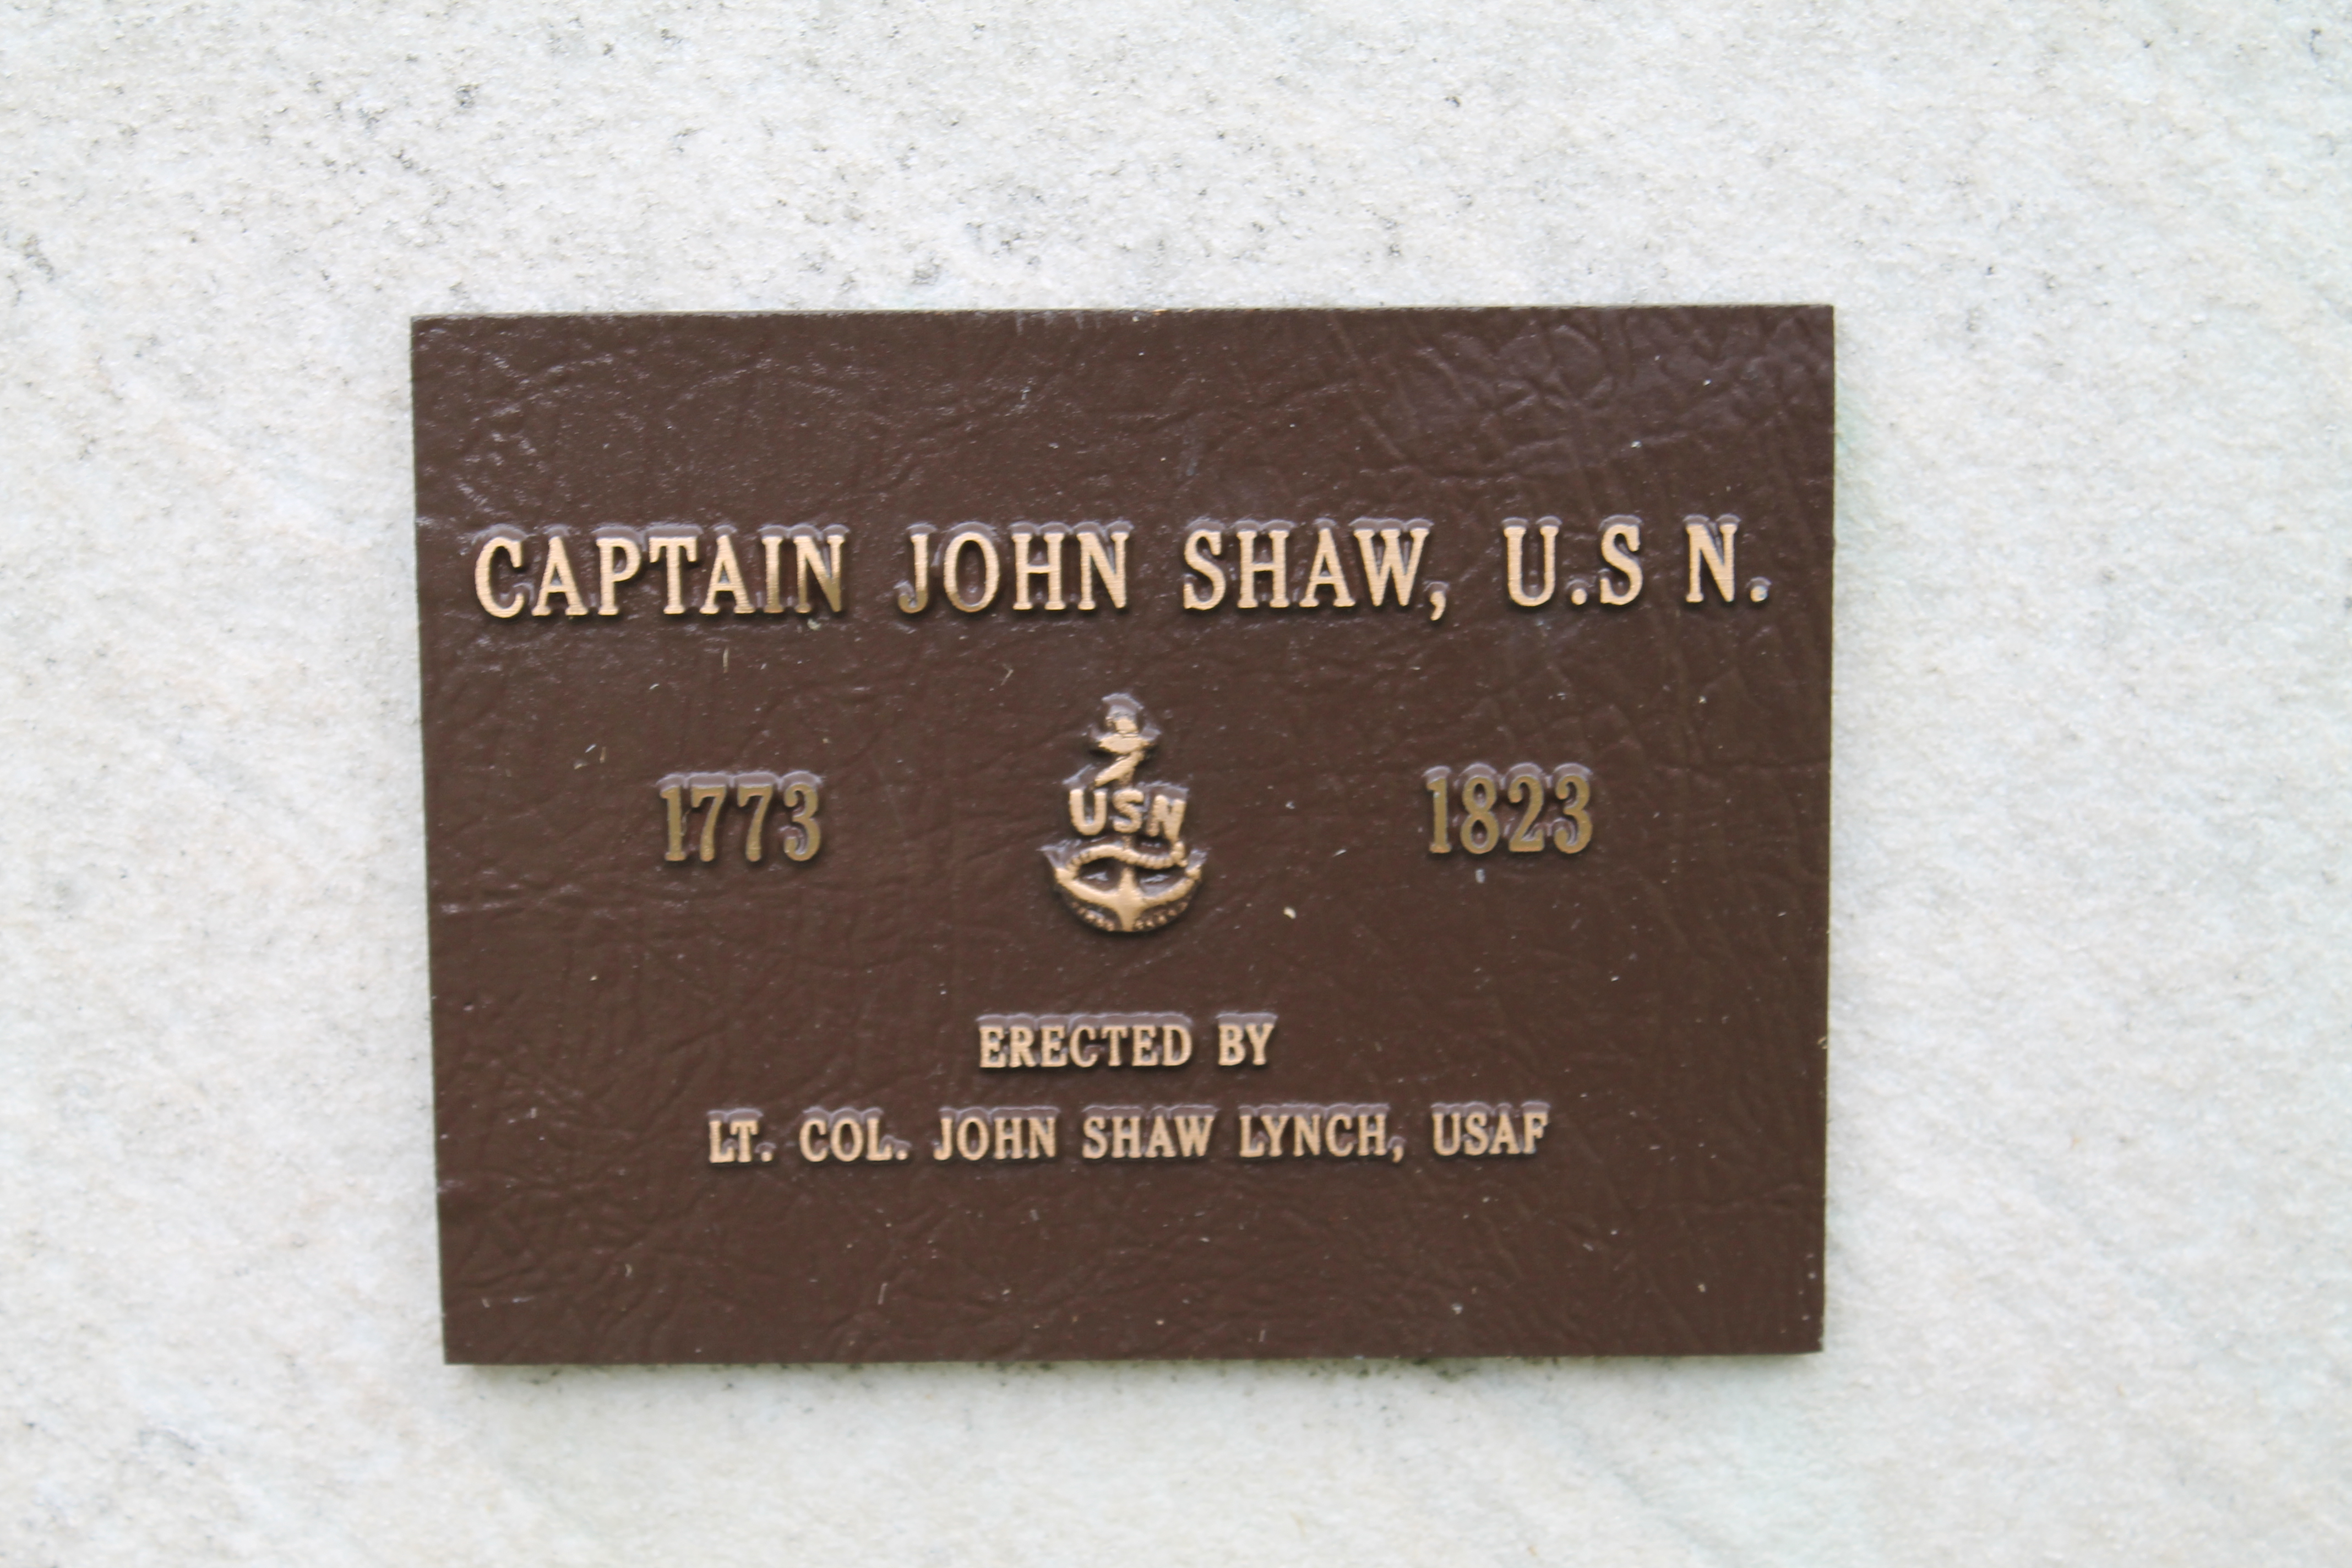 Plaque at the Philadelphia gave of Captain John Shaw. (Photo: Pattie Crider / girlboxer1970.com)